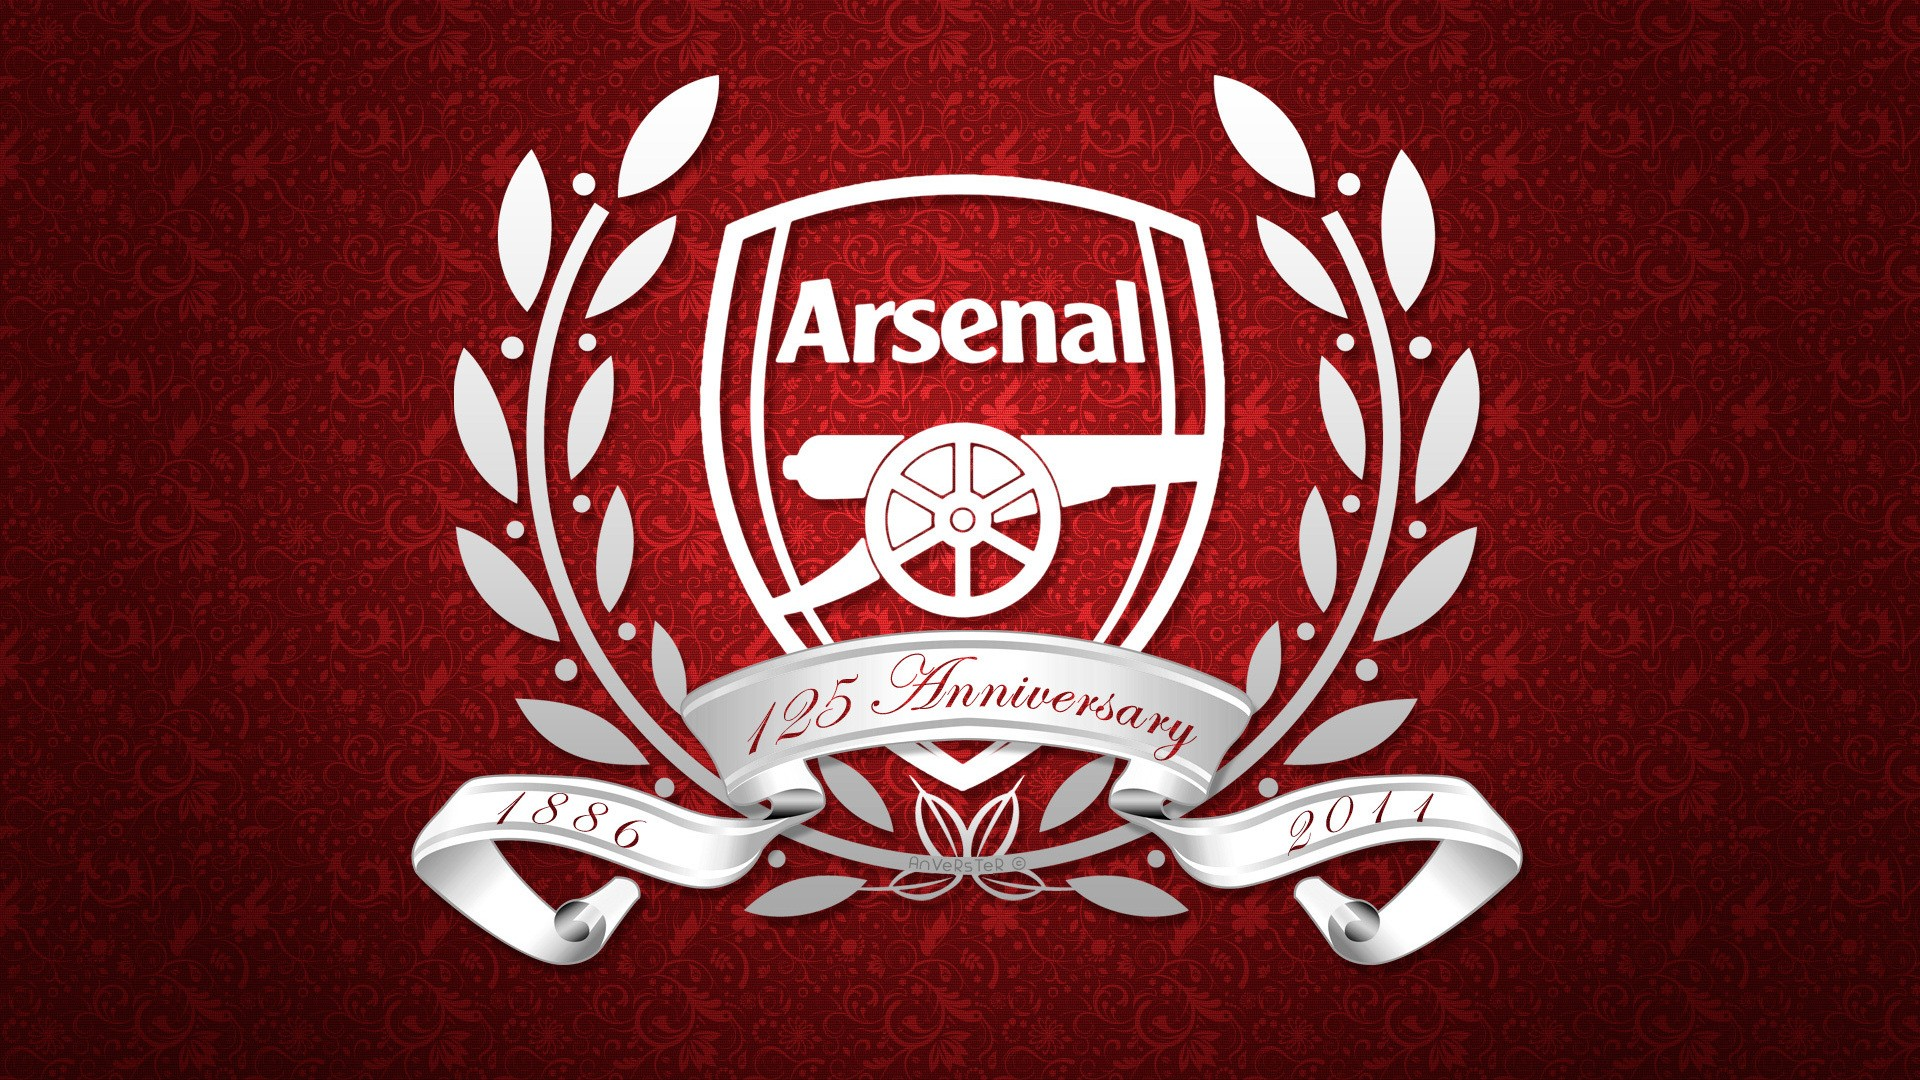 Logo of Arsenal Football Club